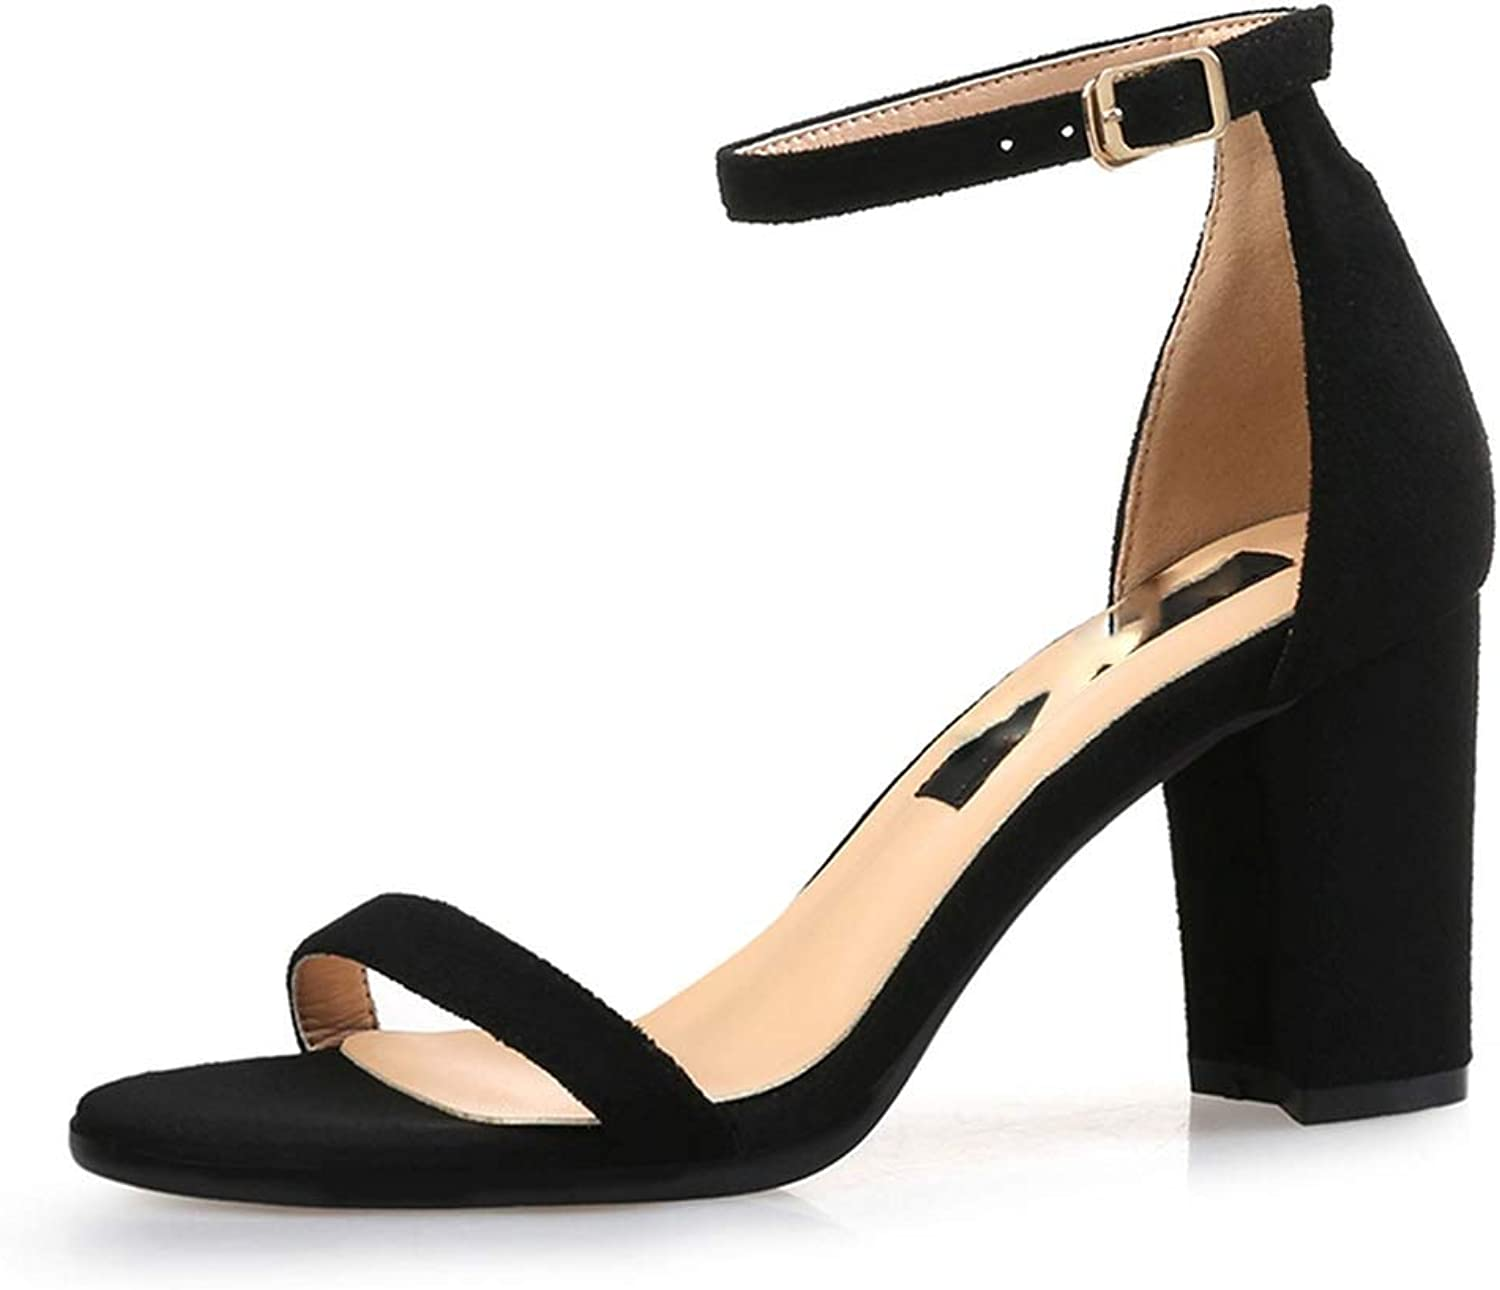 Fashion Classic 8cm High Heels Sandals Female Block Purple Pink Heels Pumps Lady Strappy shoes